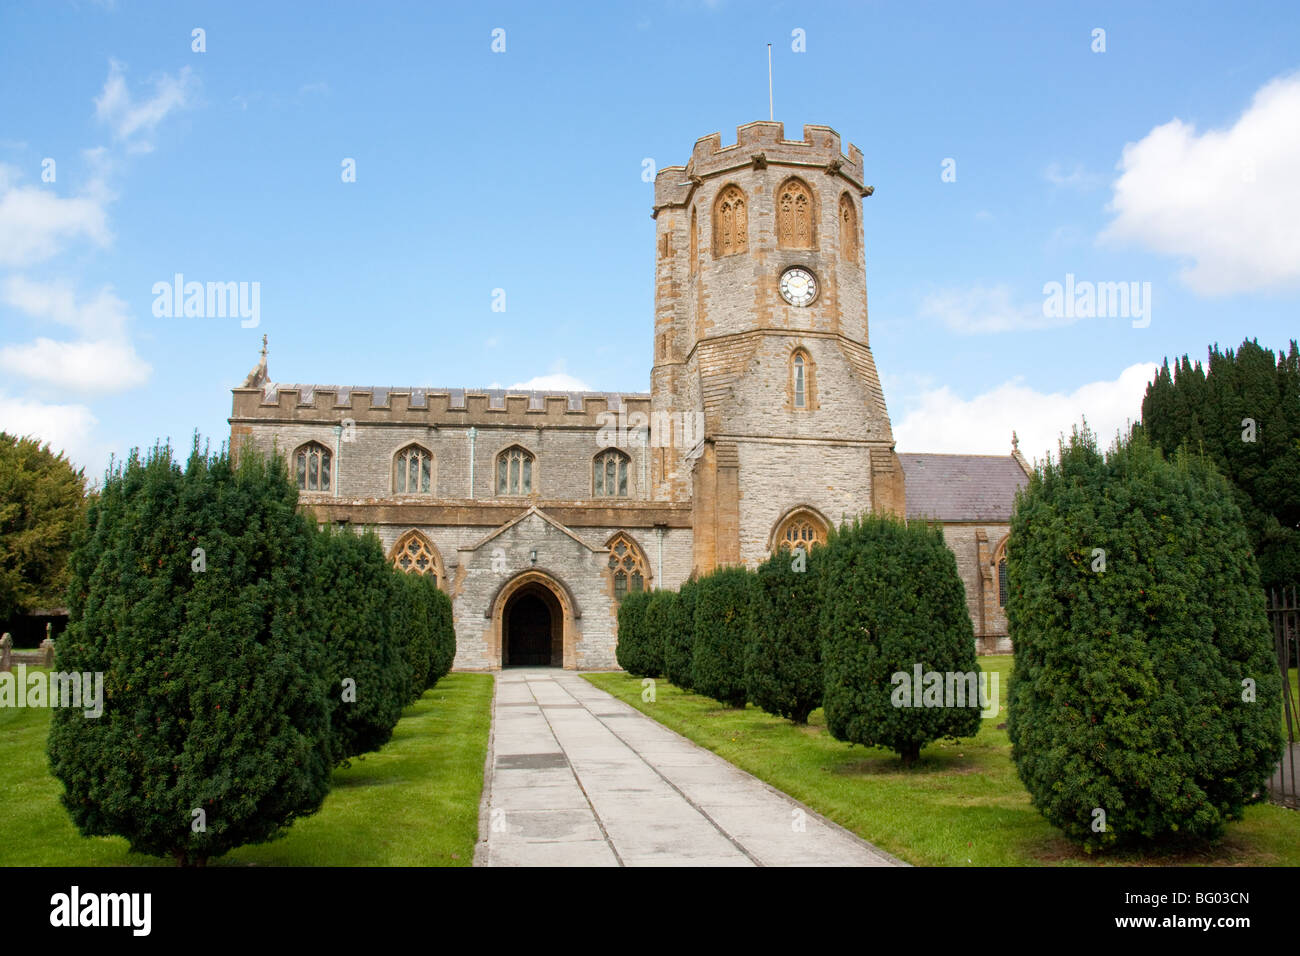 St Michaels and All Angles Church, Somerton Somerset England - Stock Image